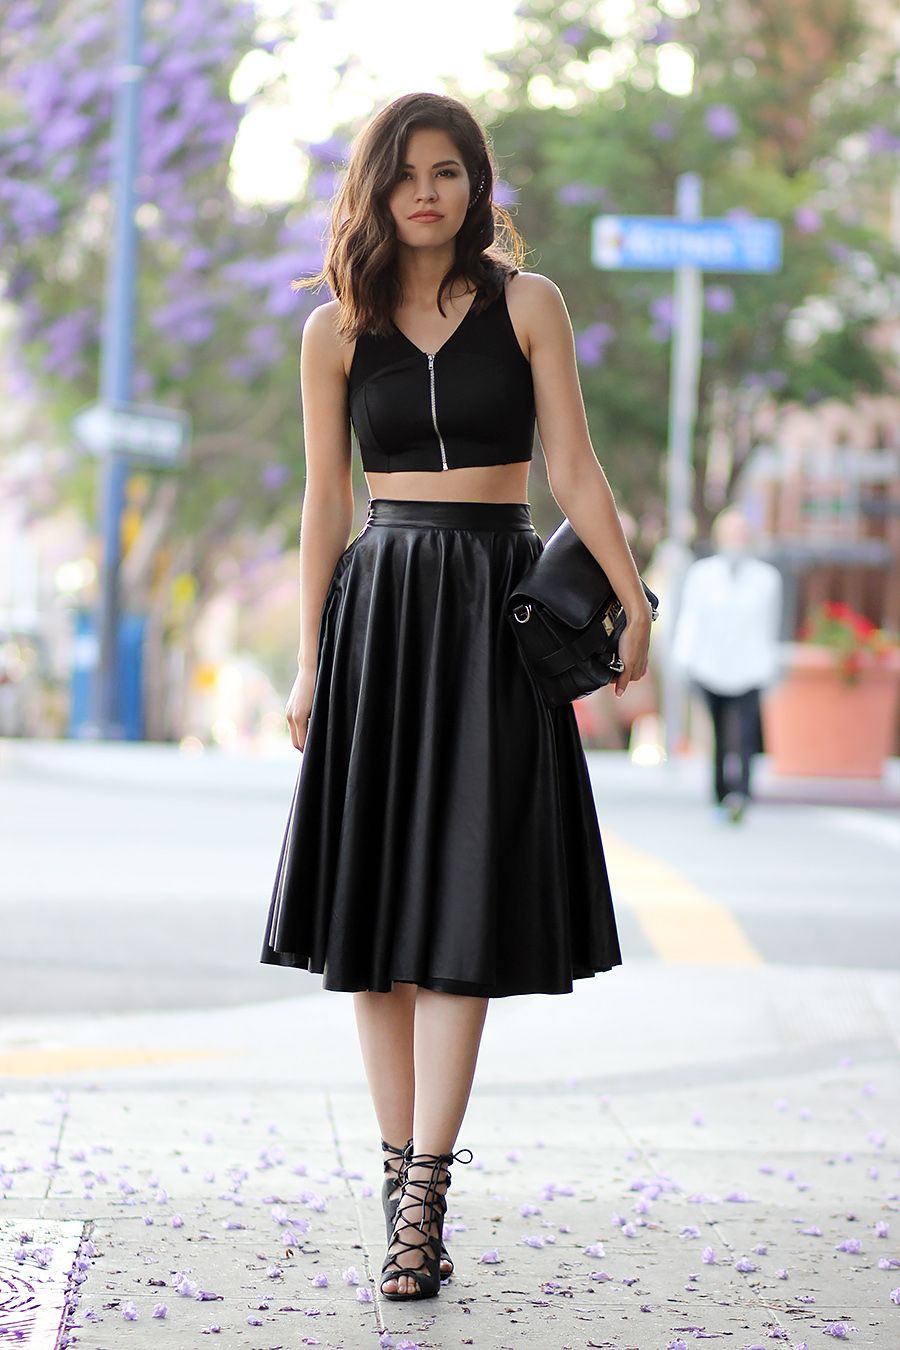 Once more in black | Skirts, Windsor and Long skirts